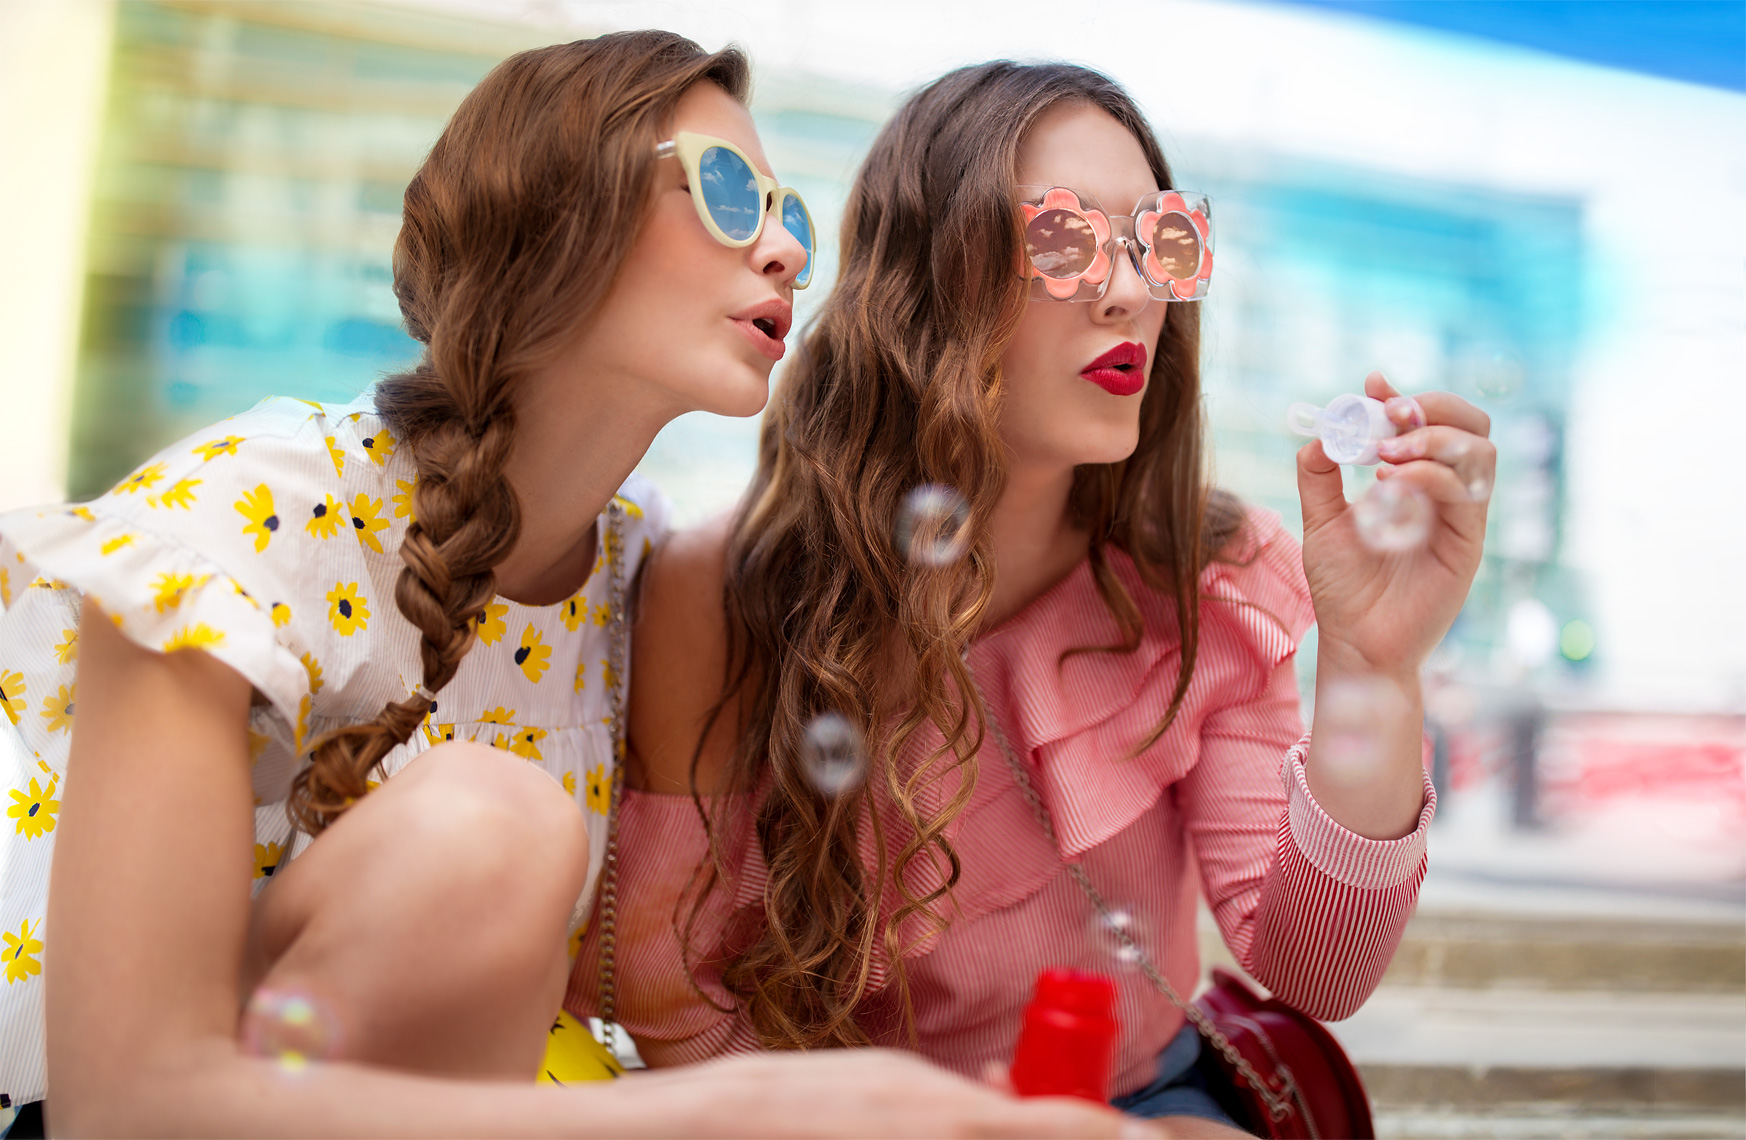 lifestyle-advertising-photo-of-teen-girlfriends-blowing-bubbles-detroit-commercial-photographer-scott-stewart